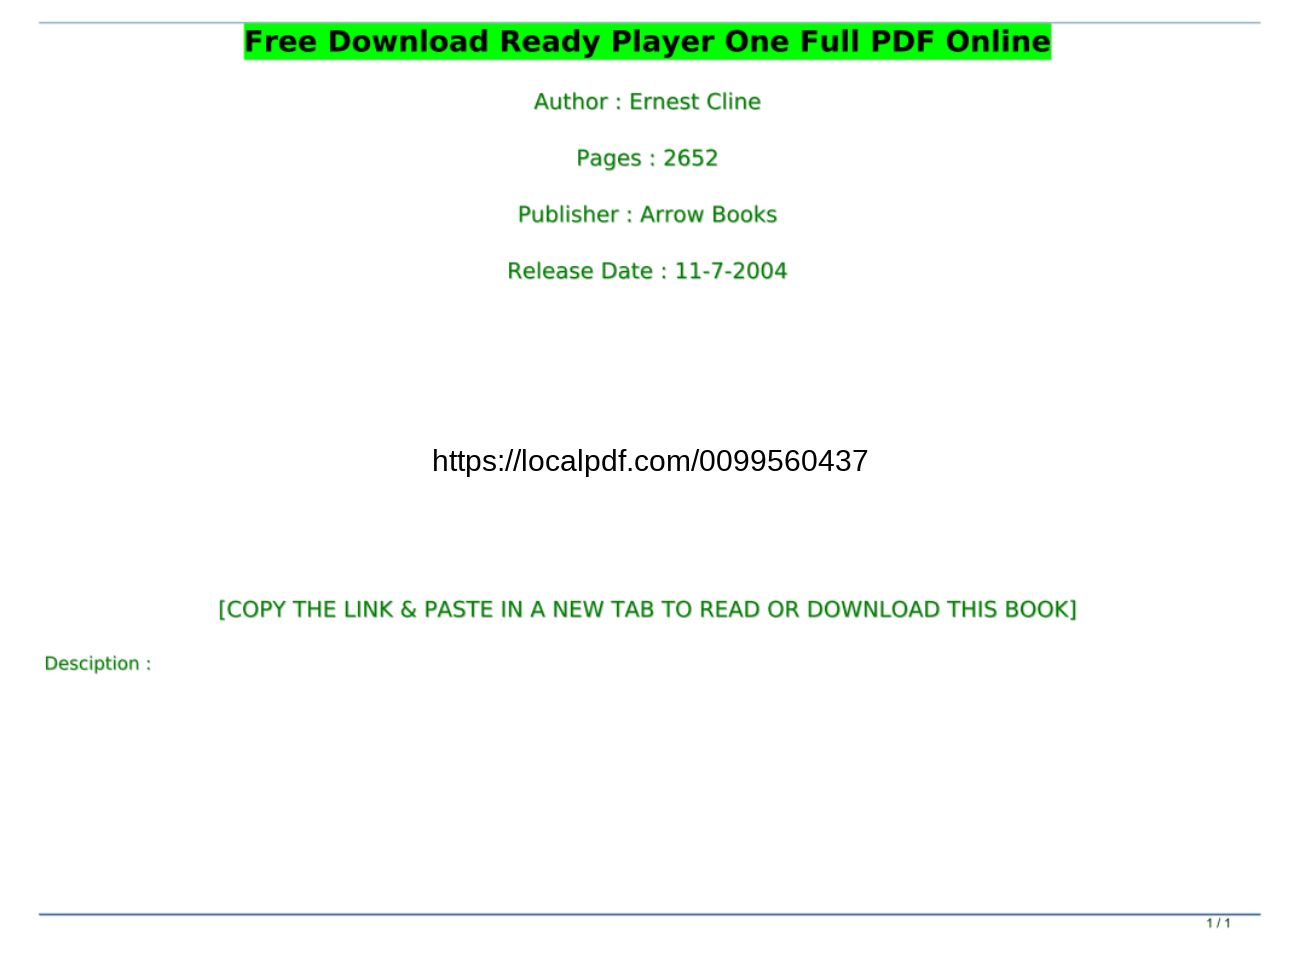 Ready Player One Pdf Online Free Download